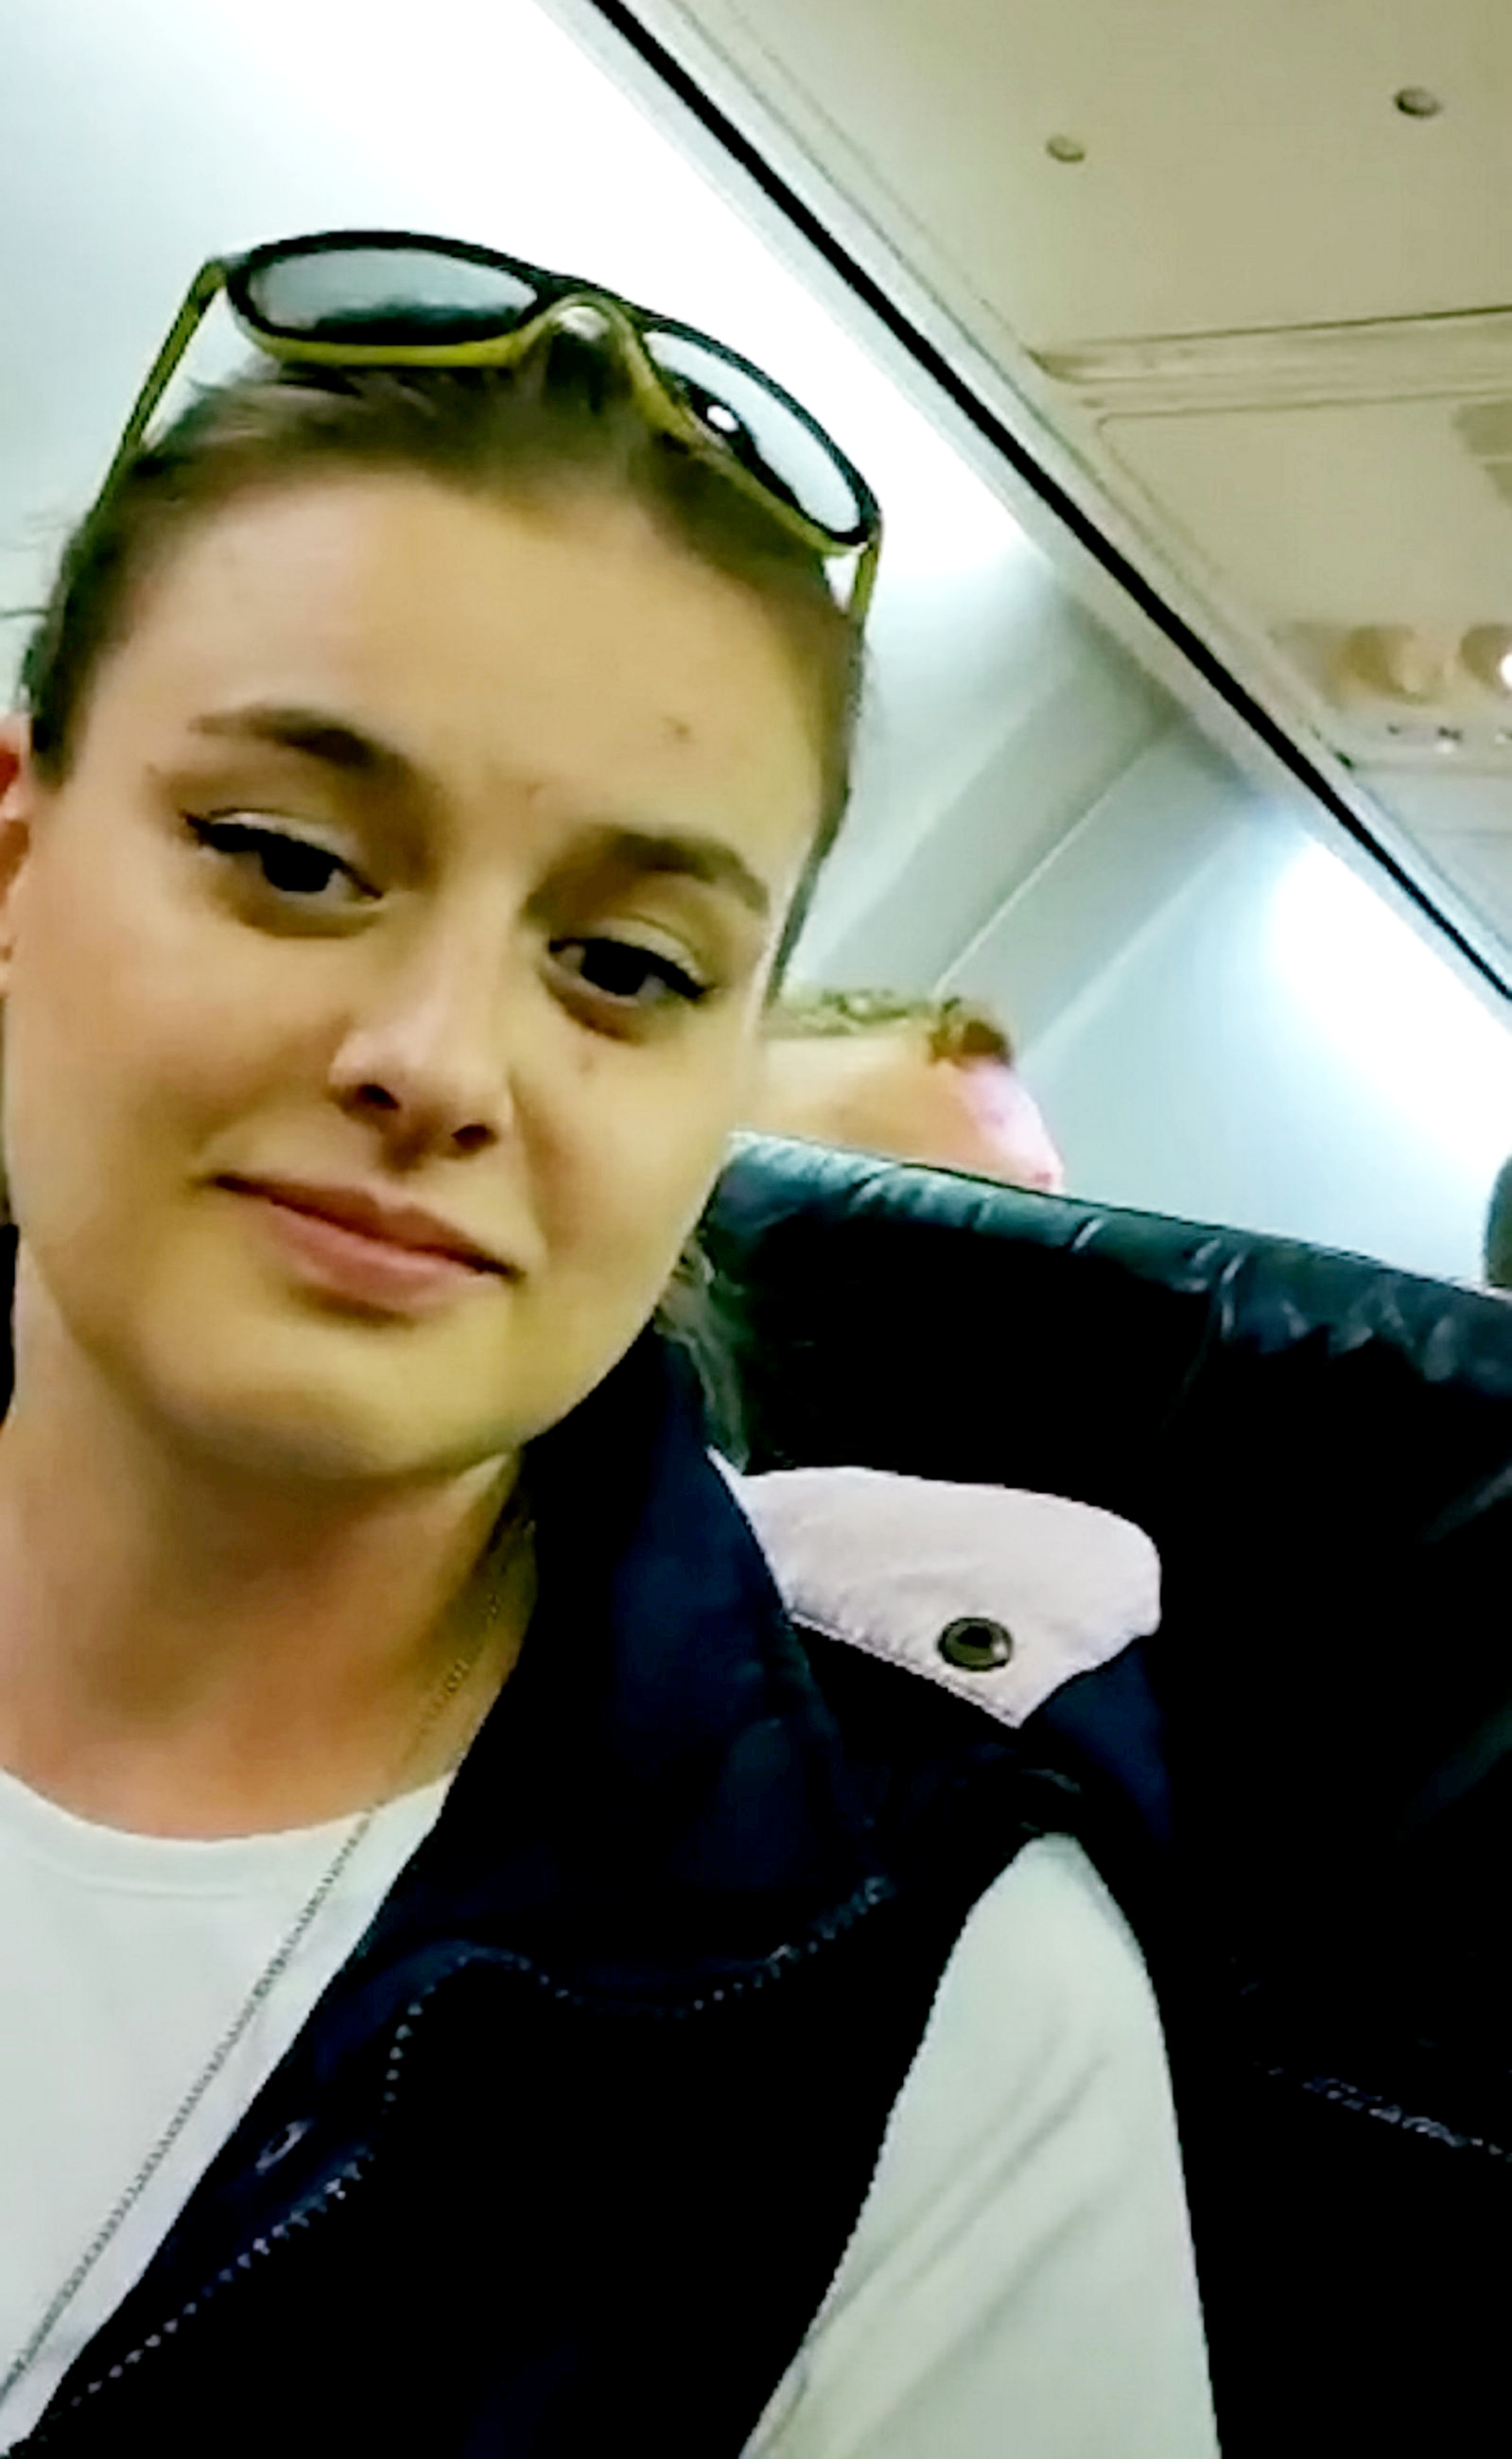 Aneta Zukow said the flight was 'hell'. Credit: SWNS